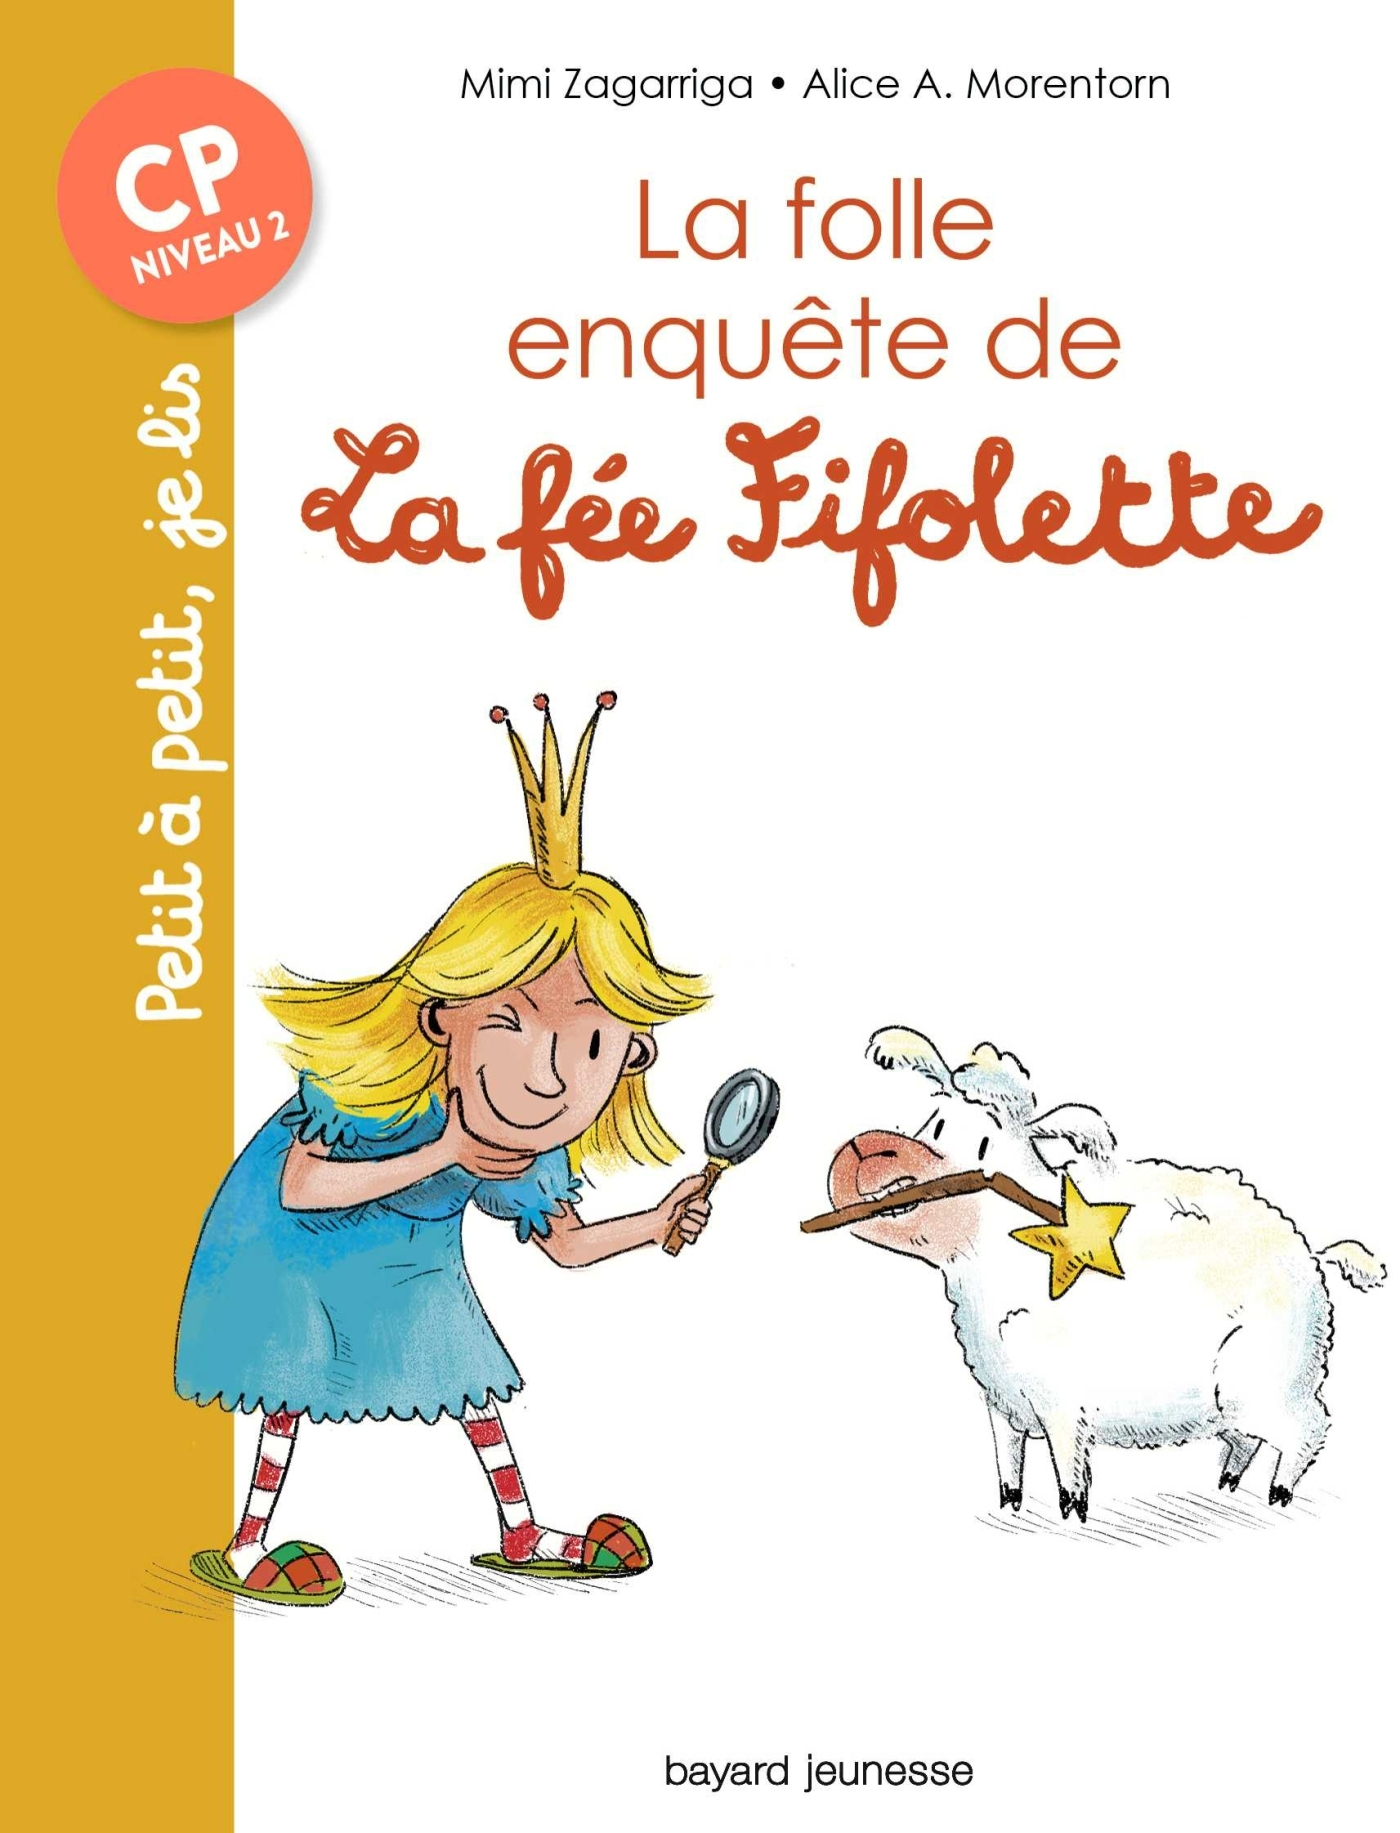 LA FOLLE ENQUETE DE LA FEE FIFOLETTE